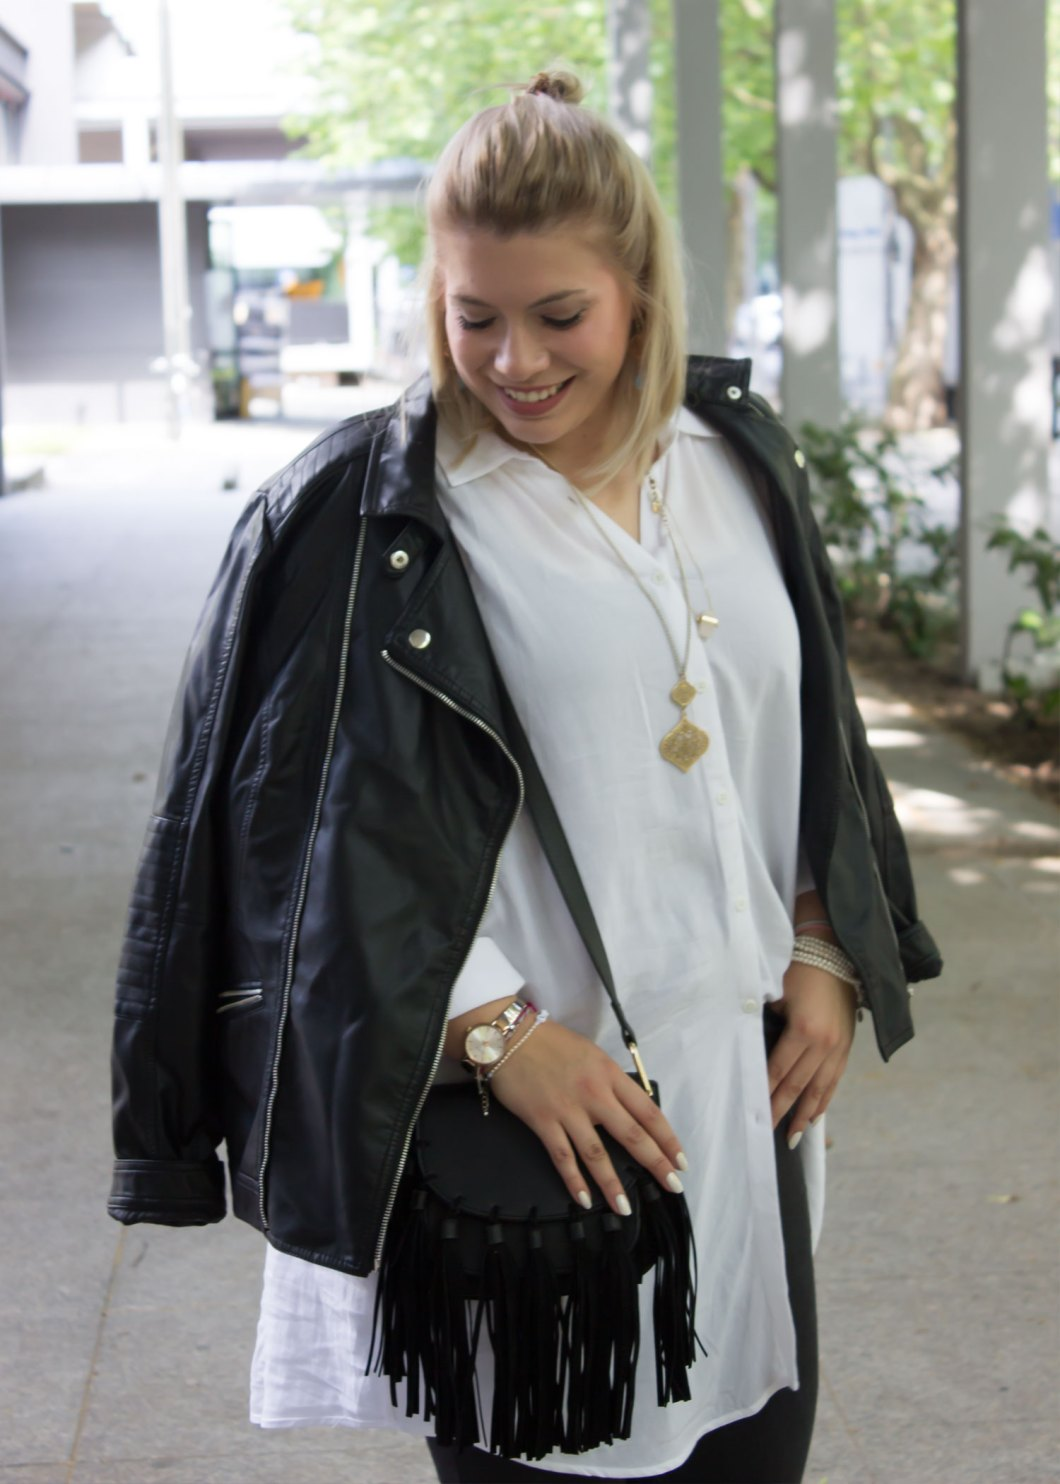 missesviolet-fashion-outfits-fashionweek-berlin-outfit-black-and-white-with-happy-size-5